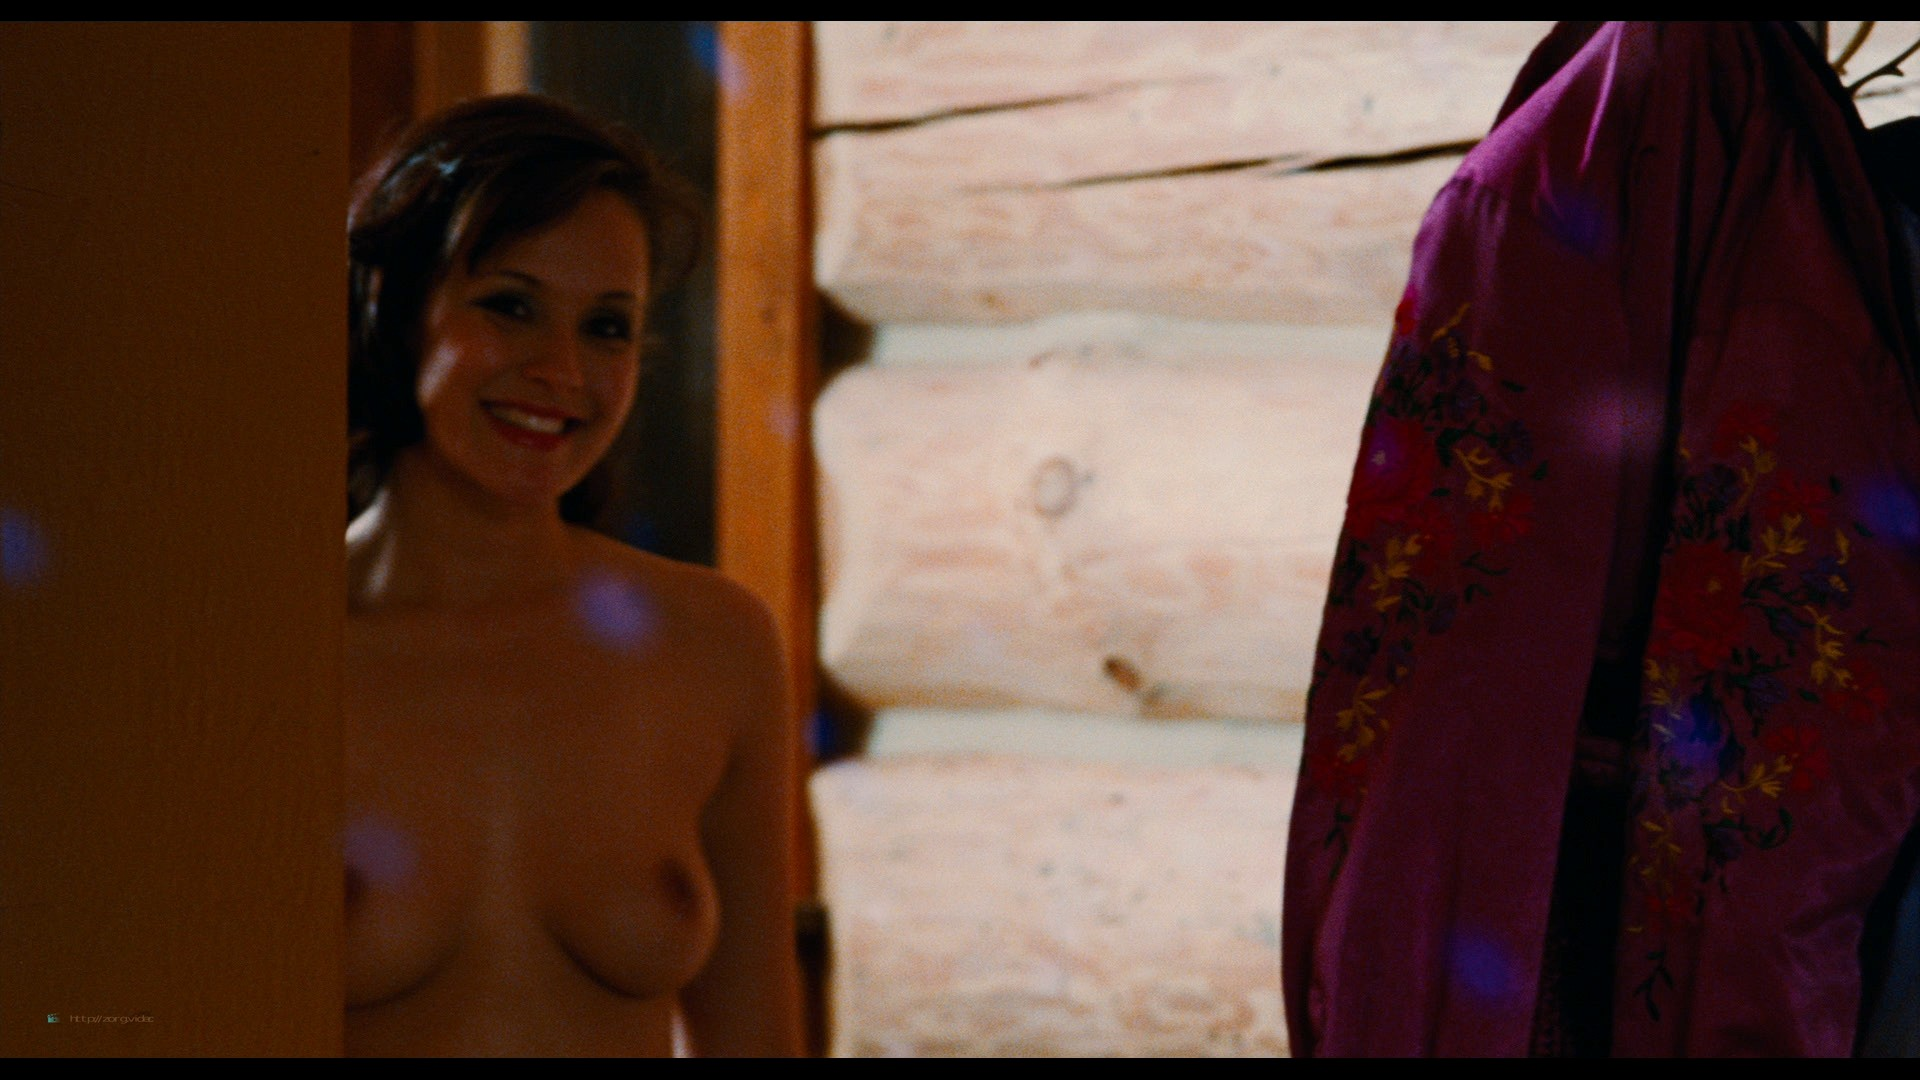 Jessica Pare nude Crystal Lowe topless Lyndsy Fonseca hot and sexy - Hot Tub Time Machine (2010) HD 1080p BluRay REMUX (6)